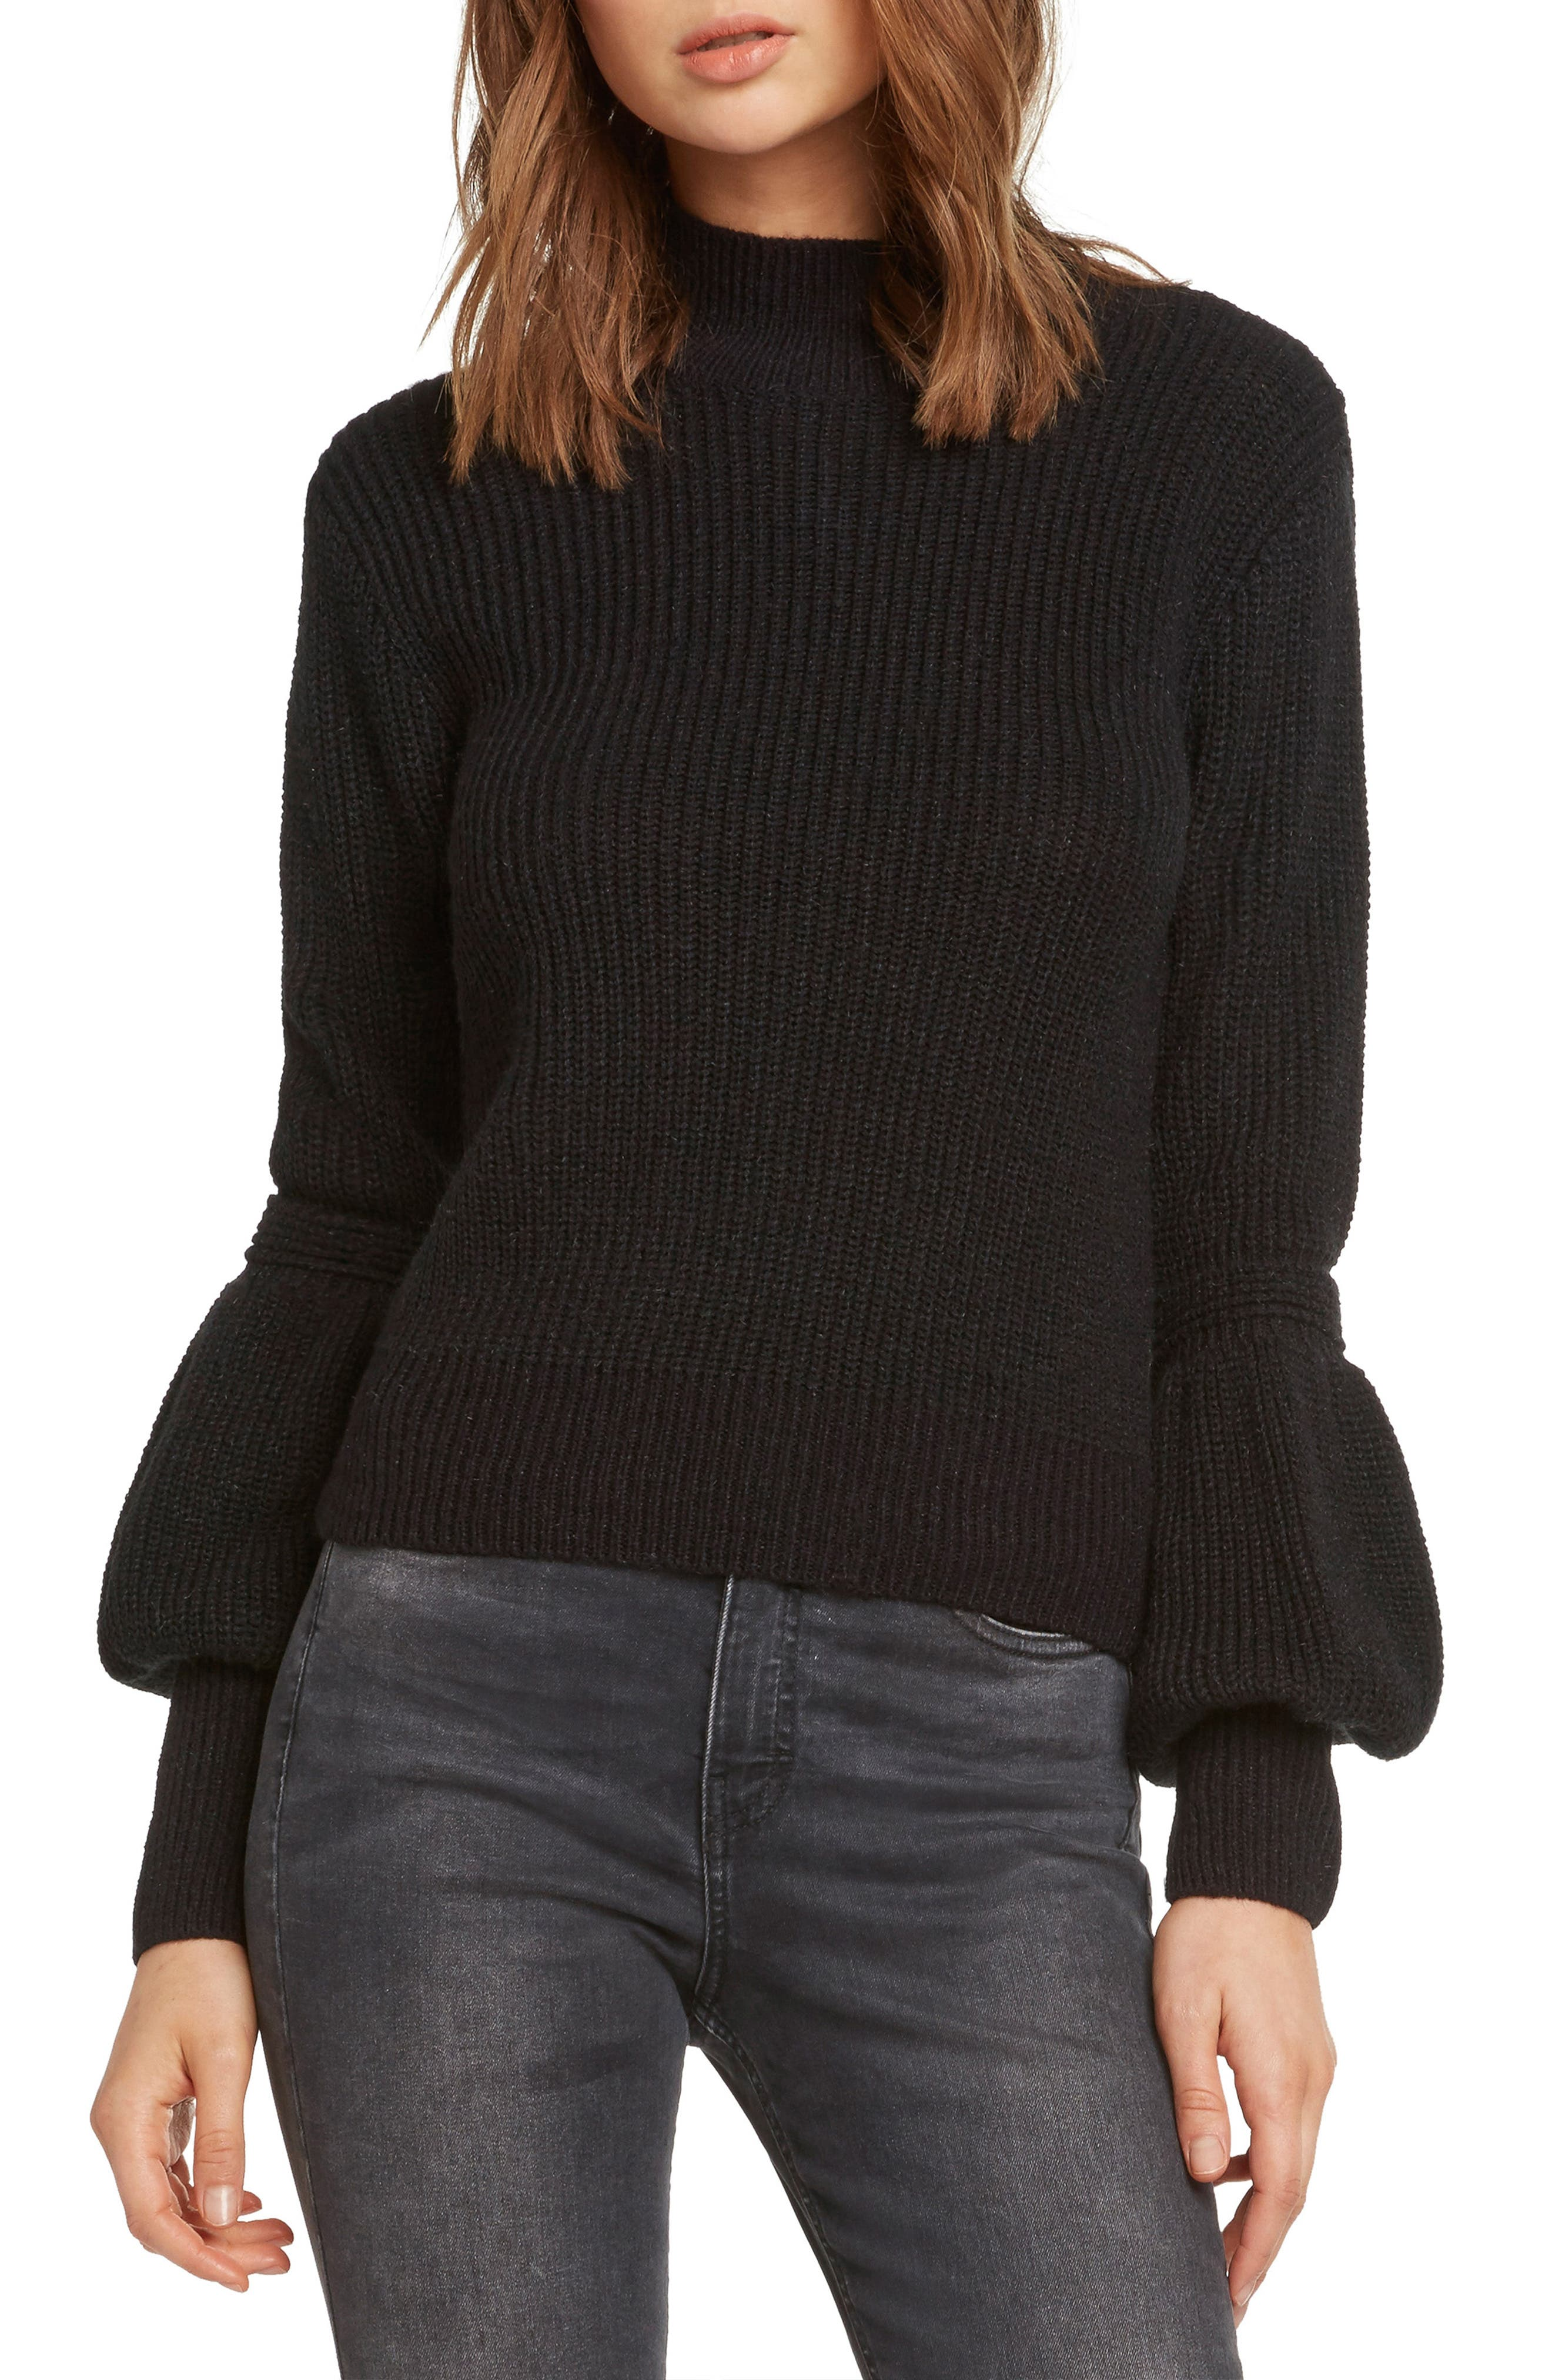 WILLOW & CLAY Bishop Sleeve Back Cutout Sweater in Black